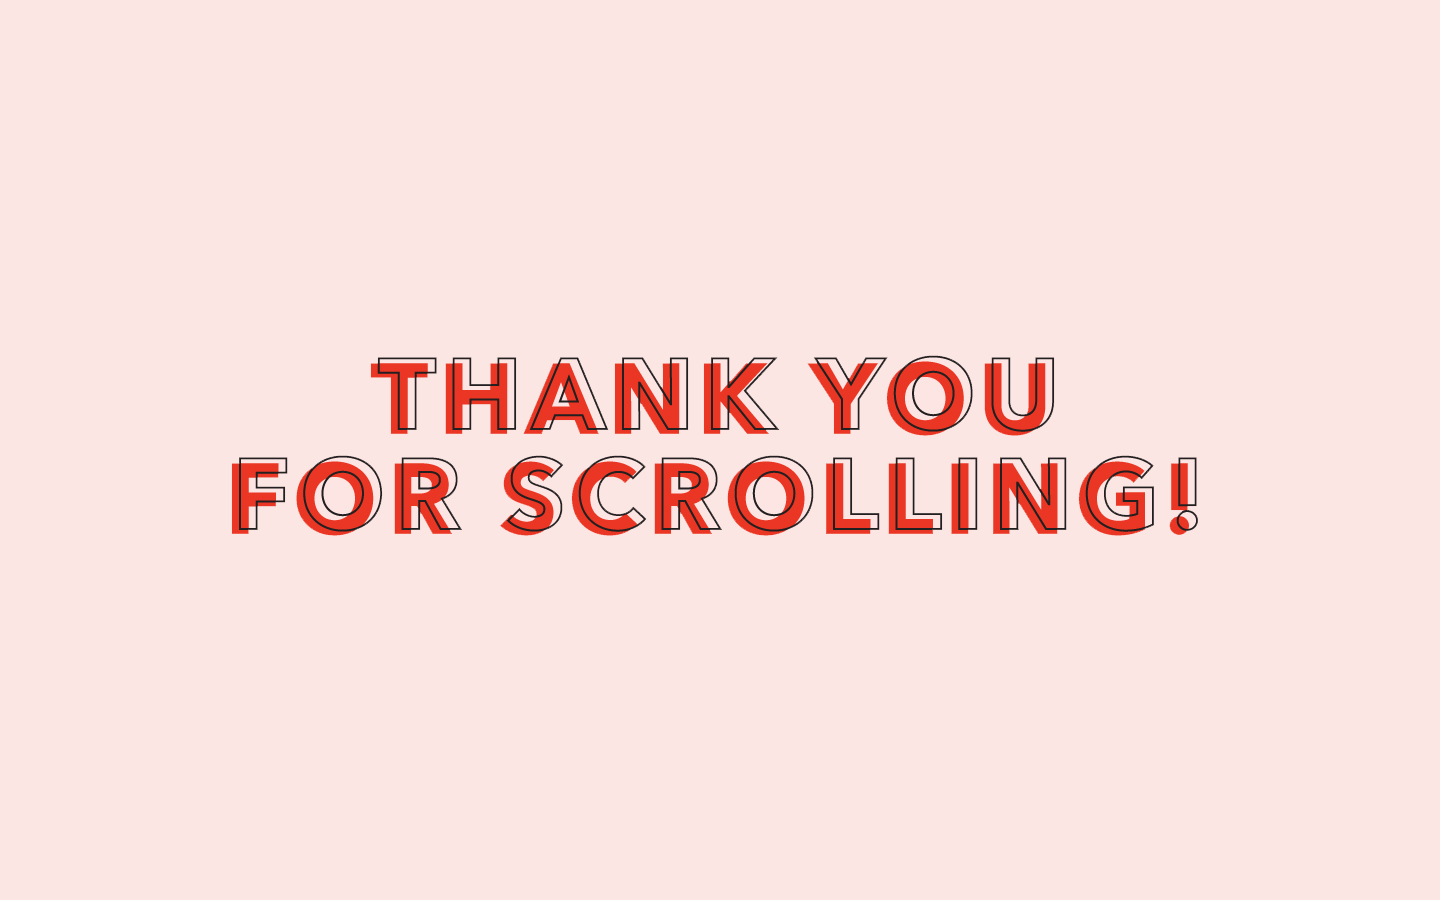 Thank you for scrolling!